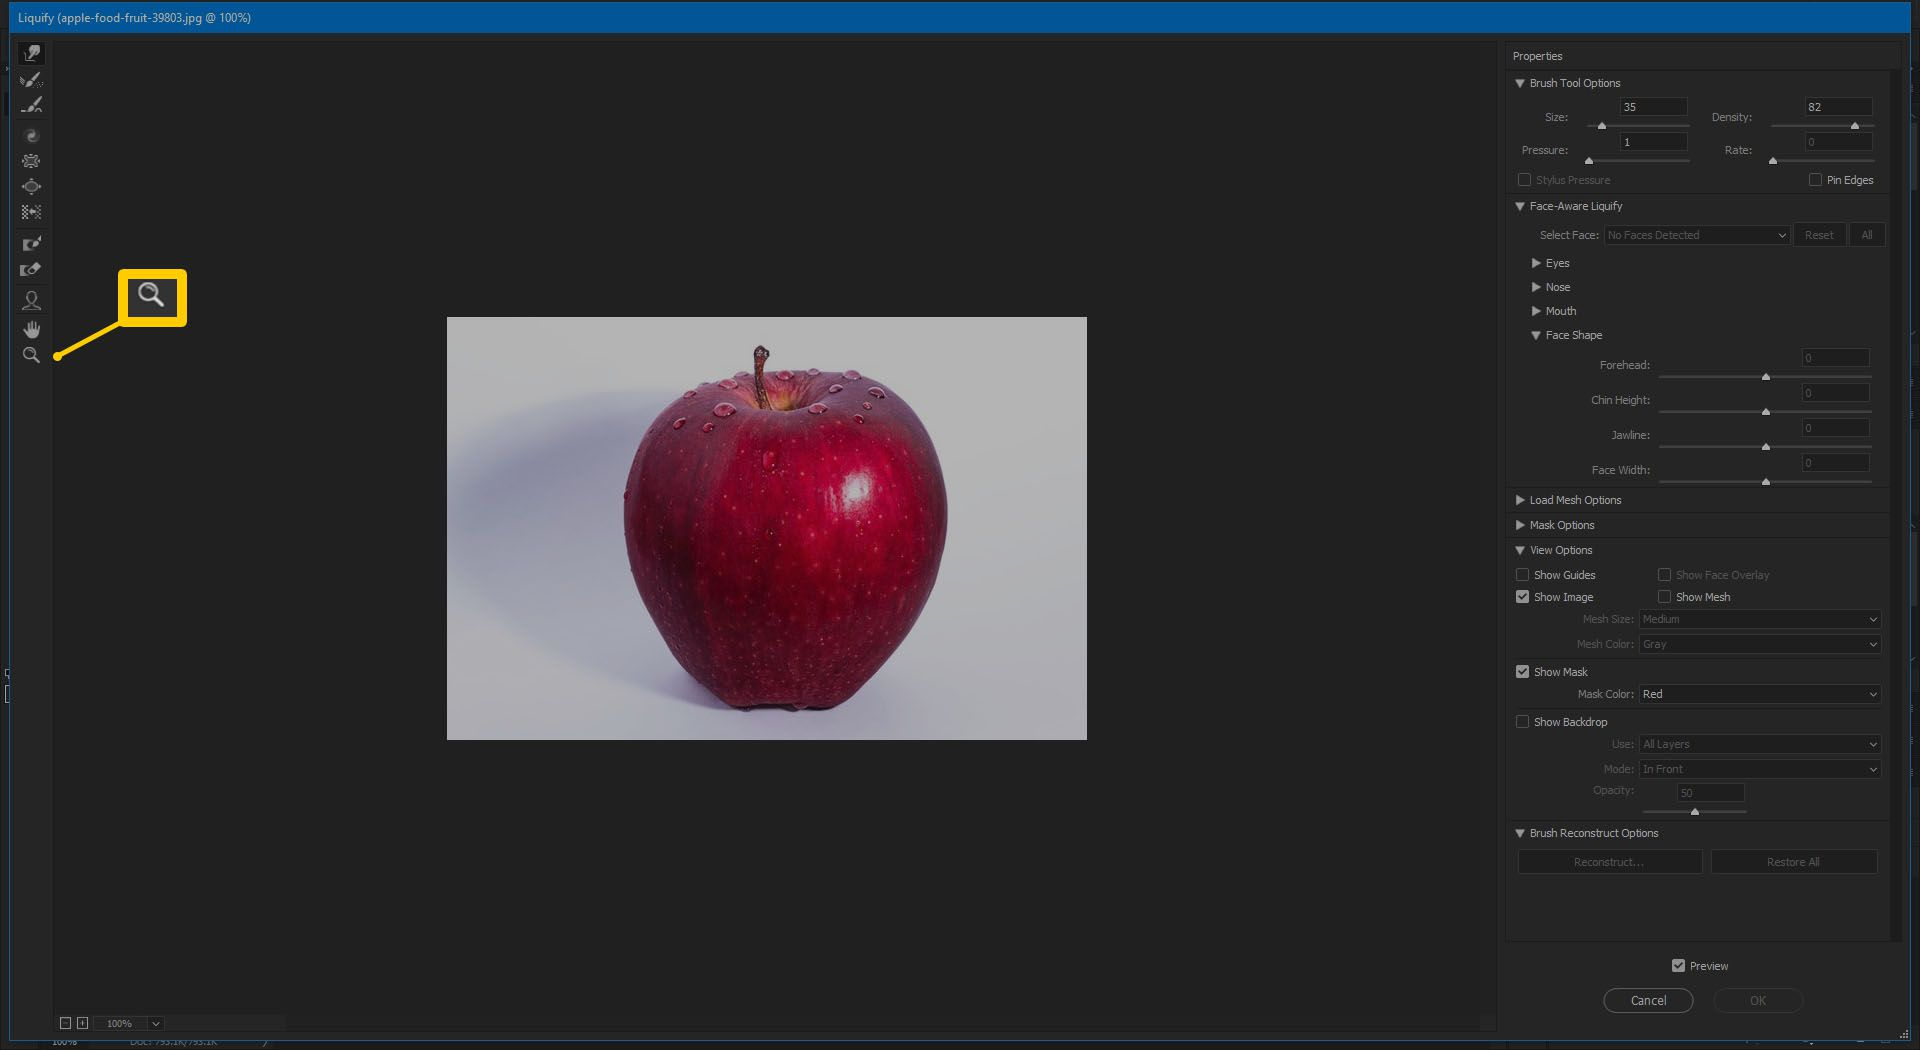 Screenshot of the Zoom Tool in Photoshop CC 2019.